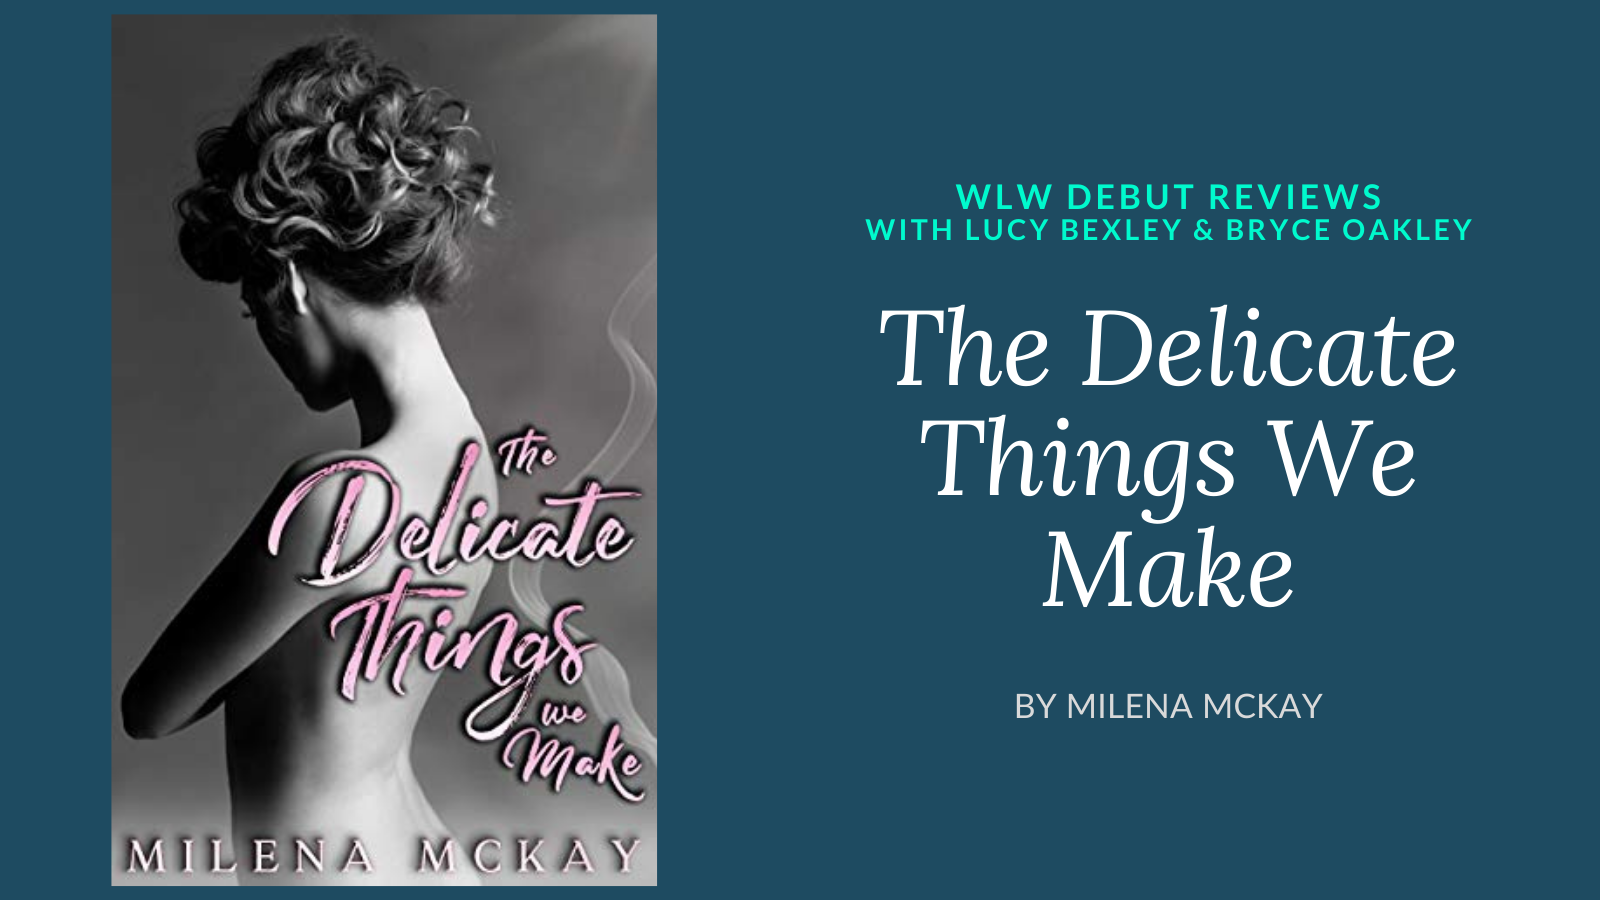 Cover of The Delicate Things We Make by Milena McKay with text: WLW Debut Reviews with Lucy Bexley and Bryce Oakley